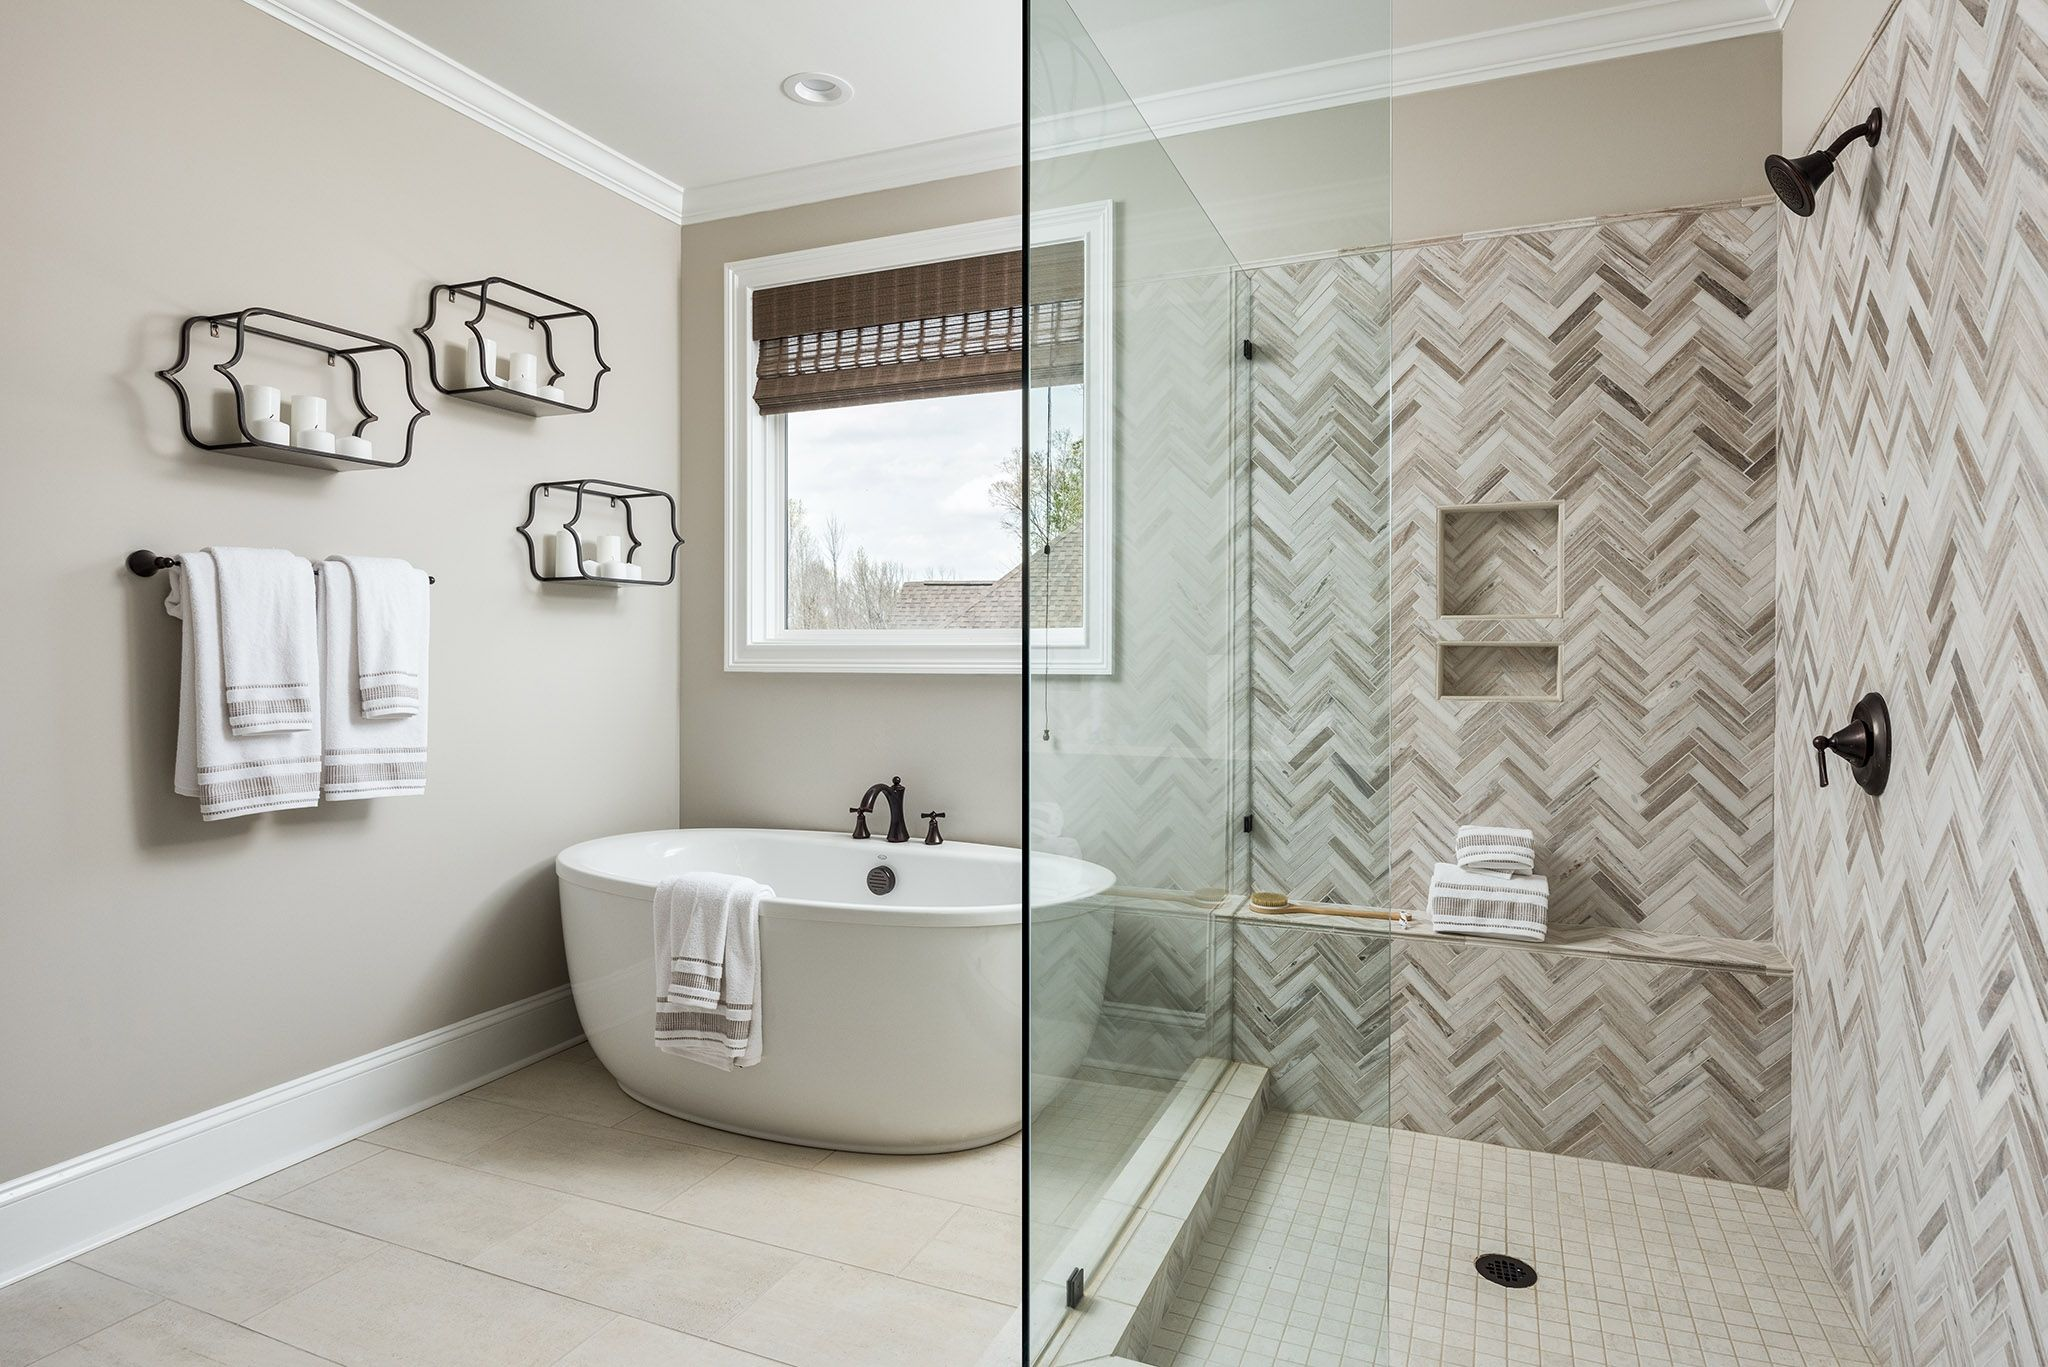 Bathroom featured in the Hadley By Shea Homes in Charlotte, NC